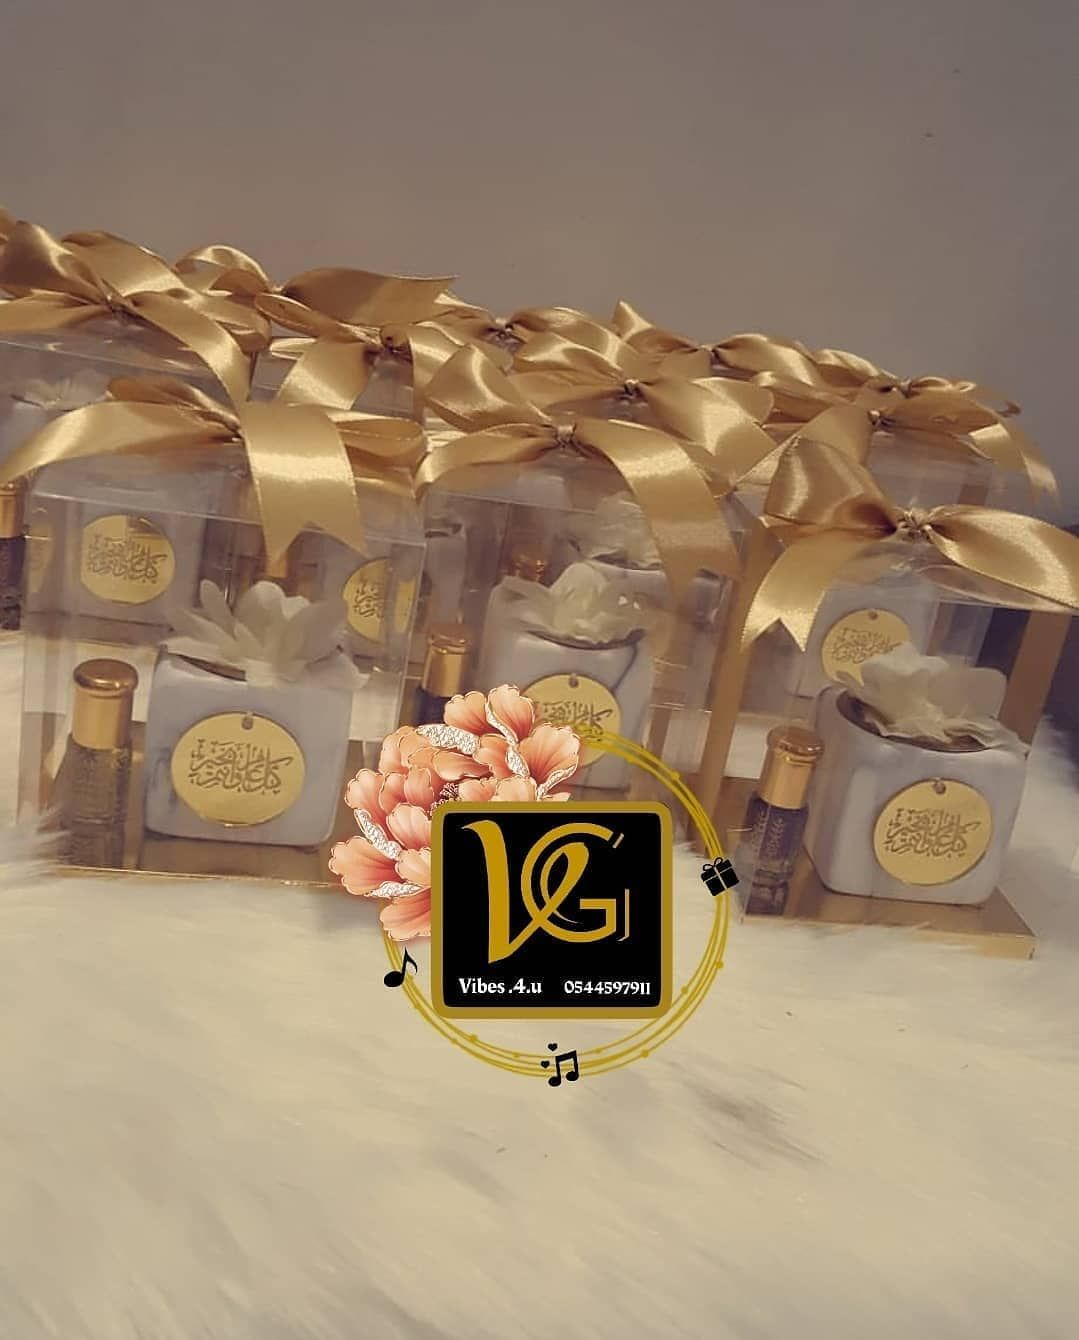 Pin By Groupe Lamtaras On استقبال Handmade Gift Tags Gift Tags Gifts